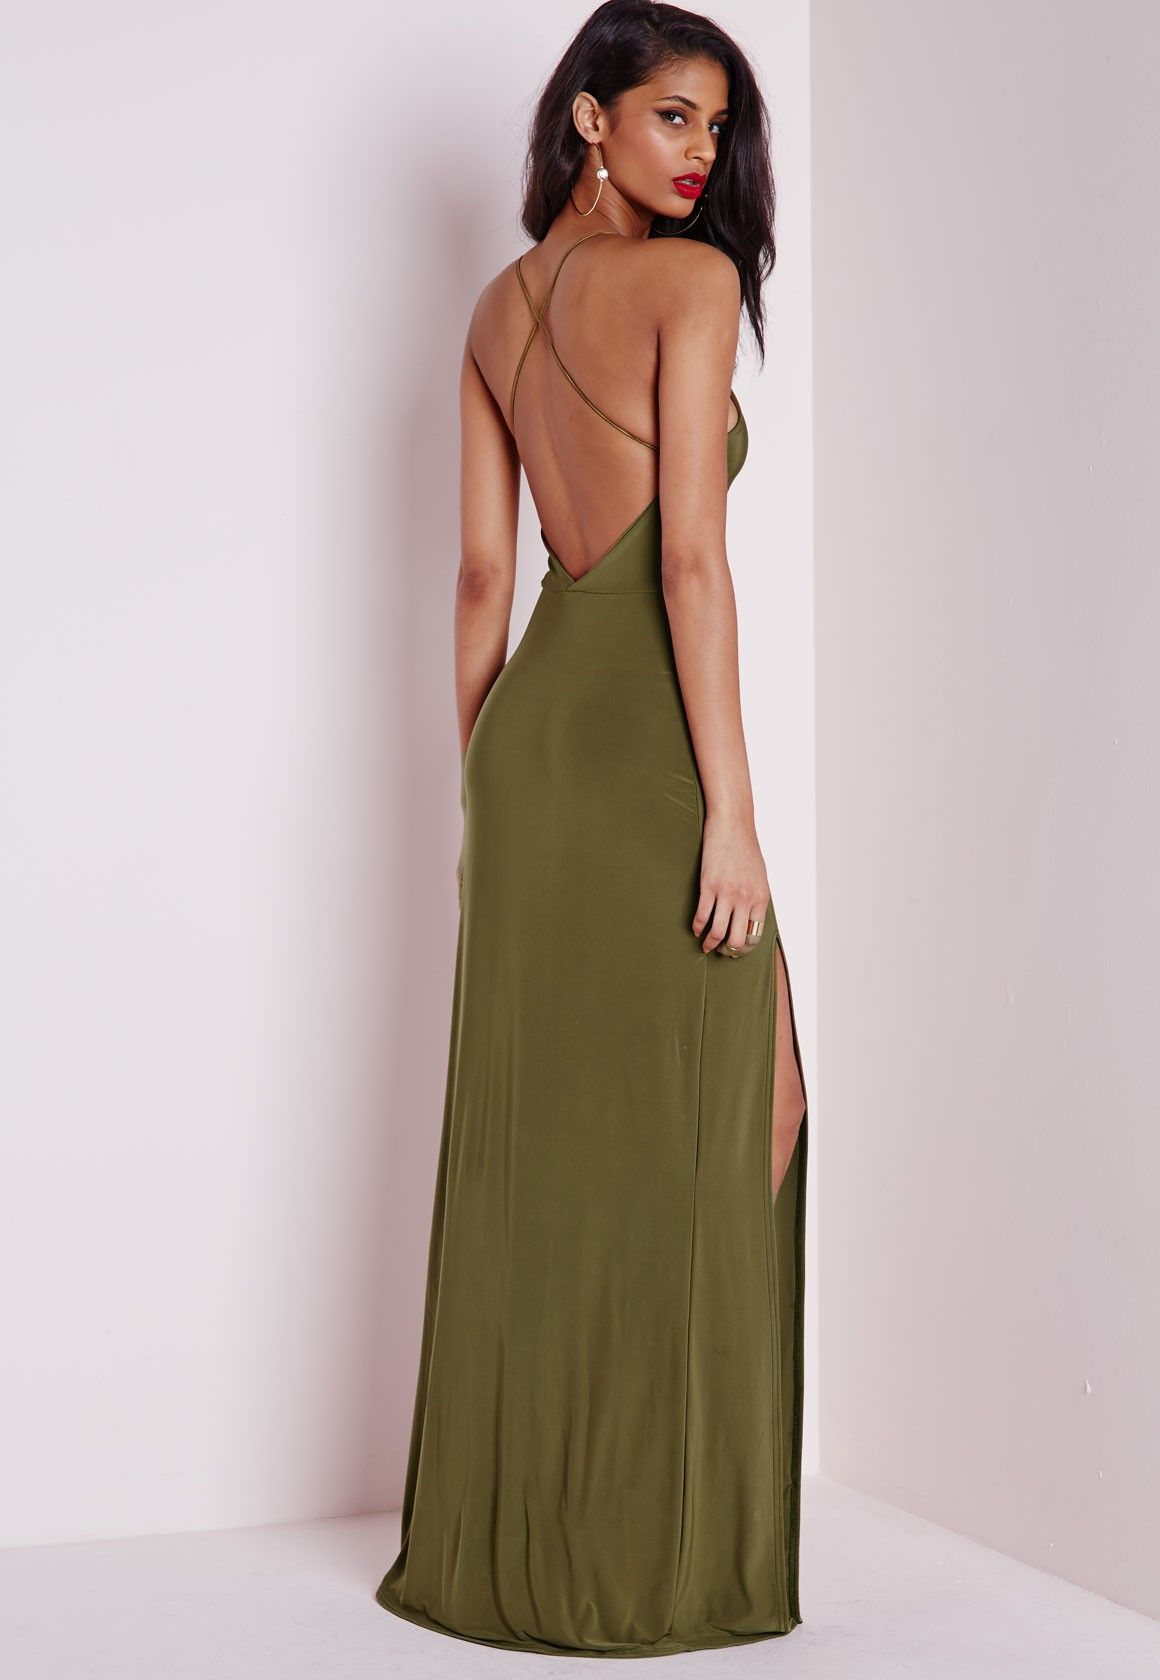 Slinky Side Split Maxi Dress Khaki - Dresses - Maxi Dresses - Missguided b37a580fe16d